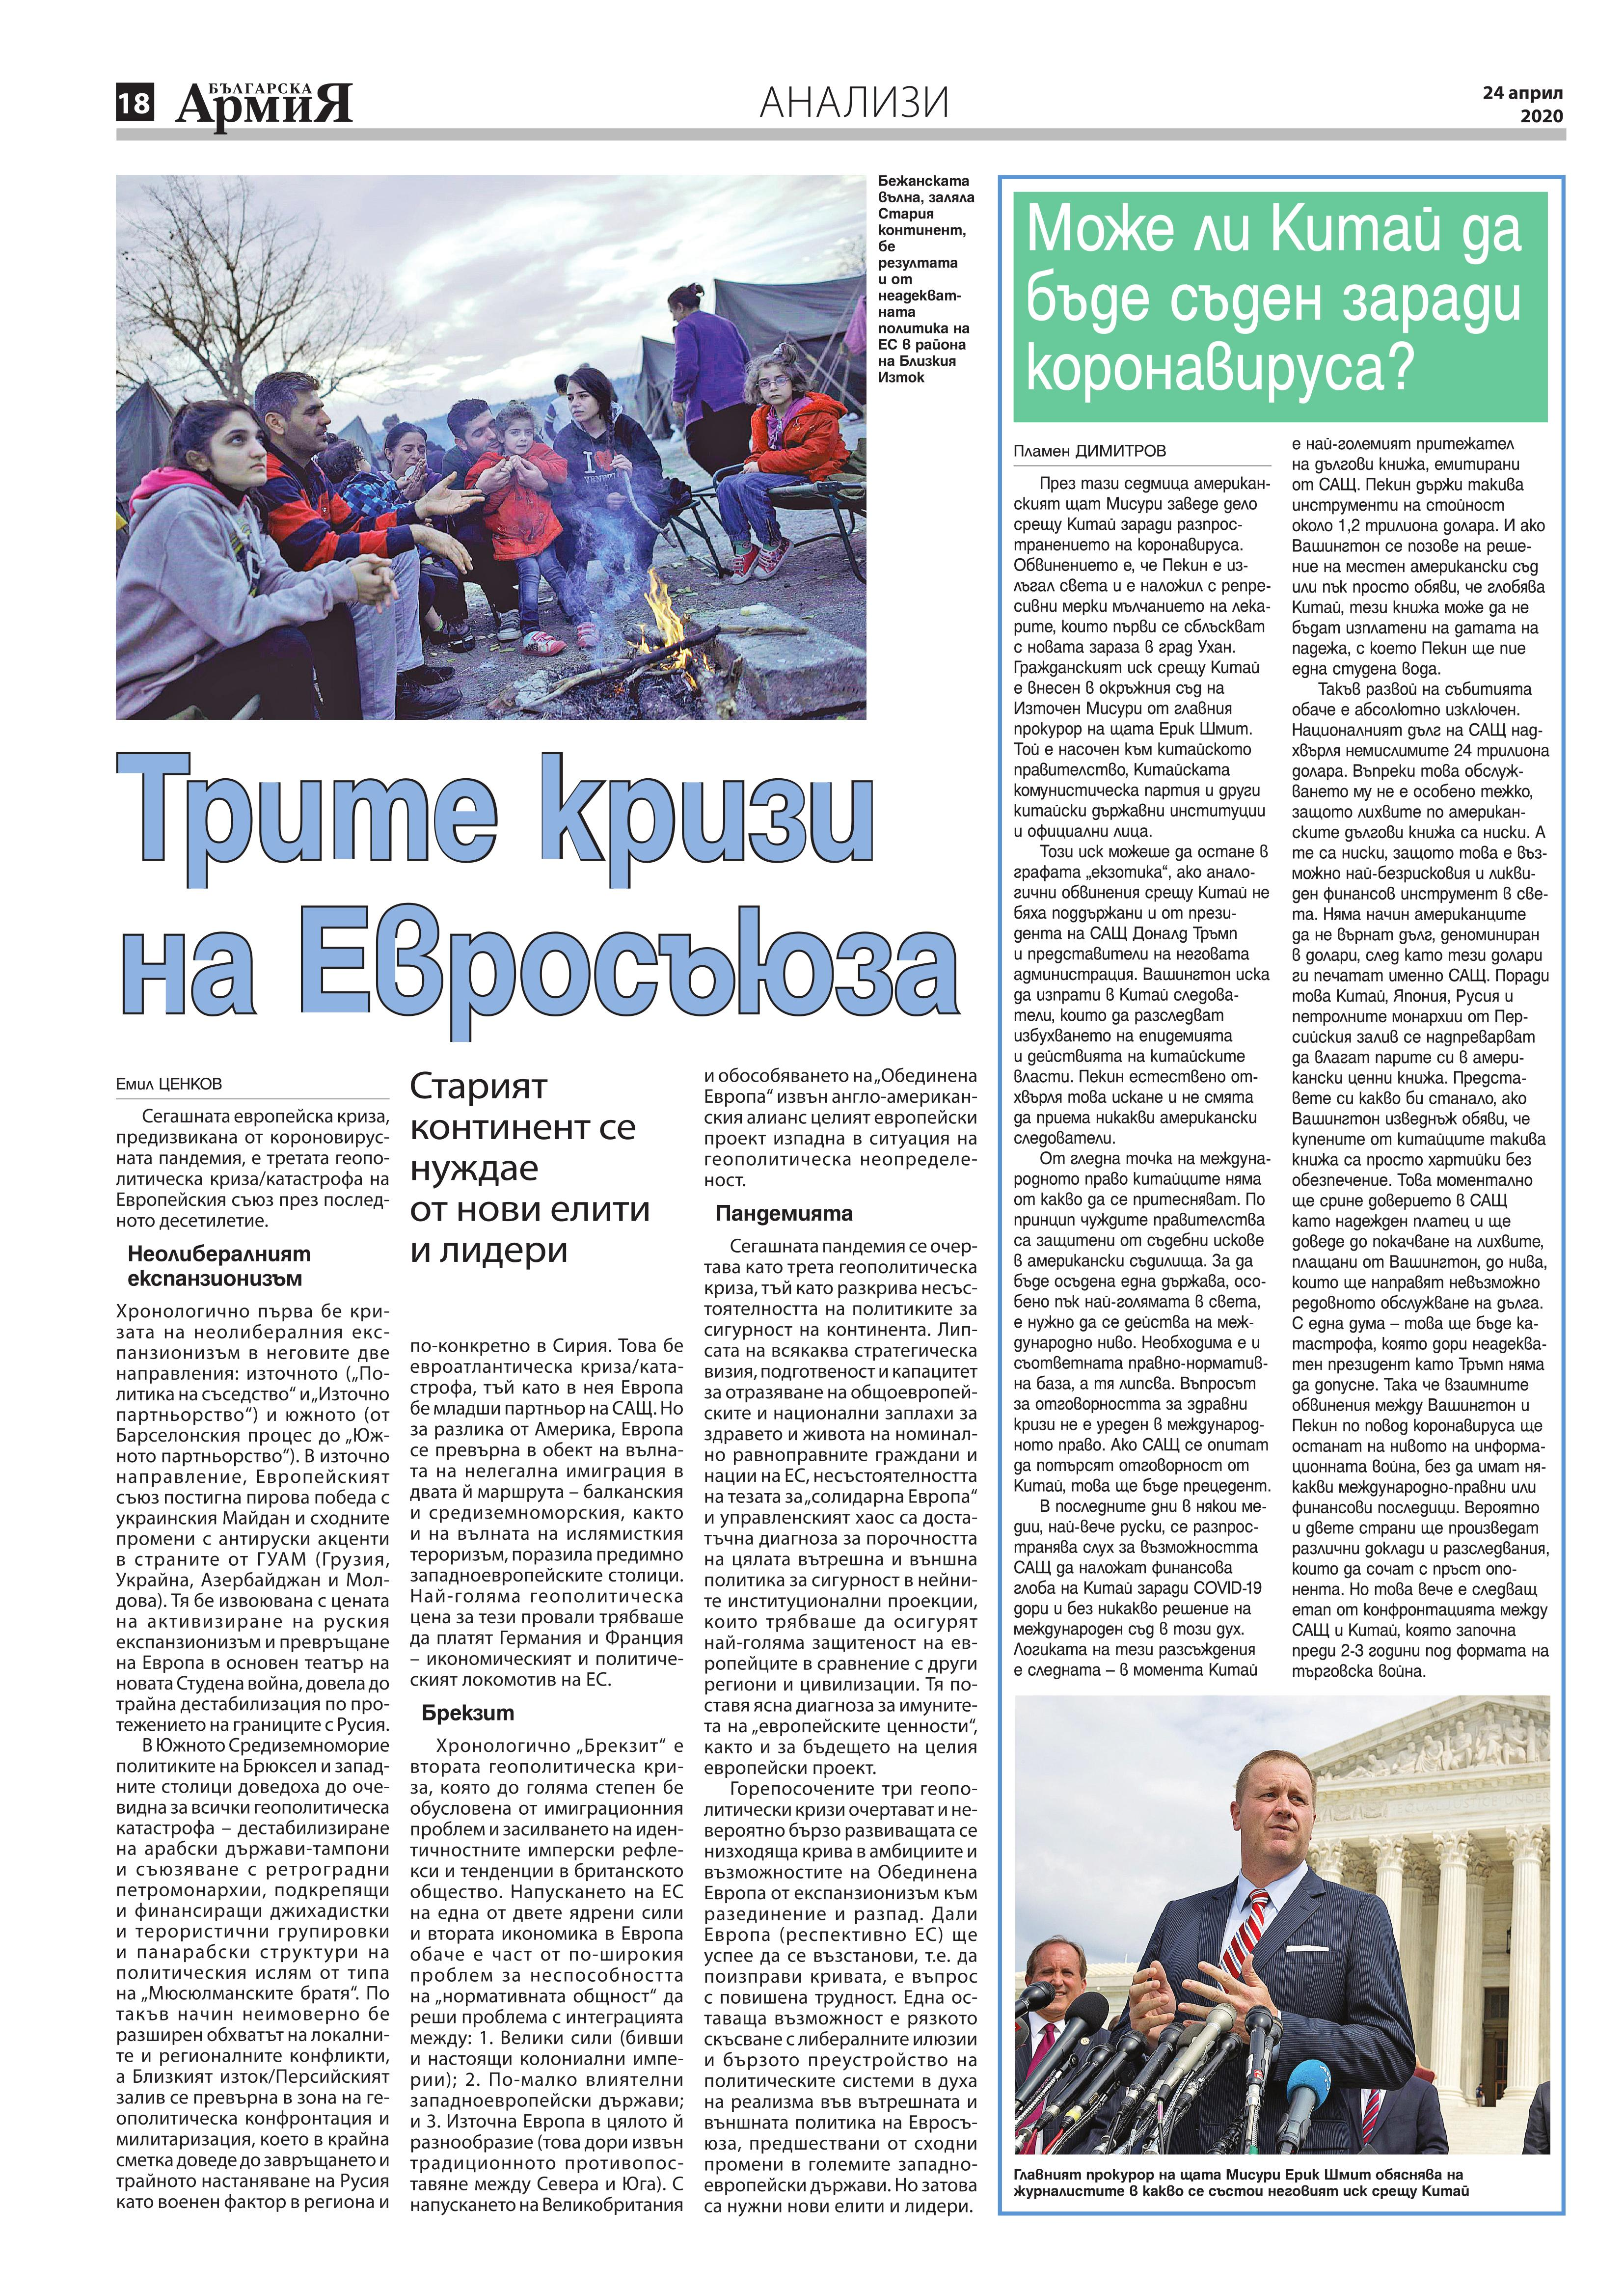 https://www.armymedia.bg/wp-content/uploads/2015/06/18.page1_-136.jpg